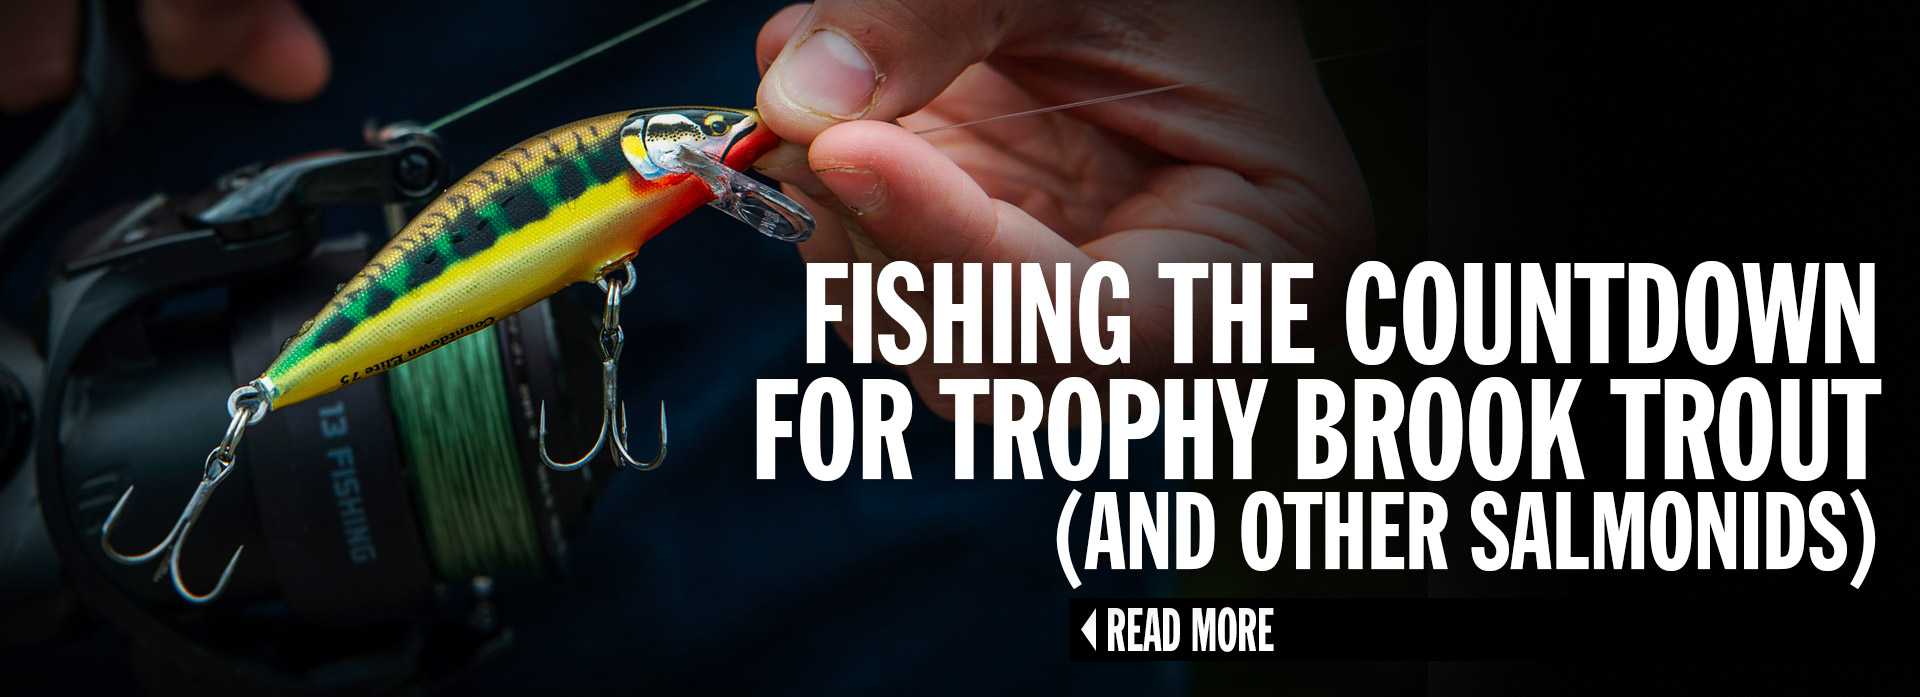 Fishing the Countdown for Trophy Brook Trout